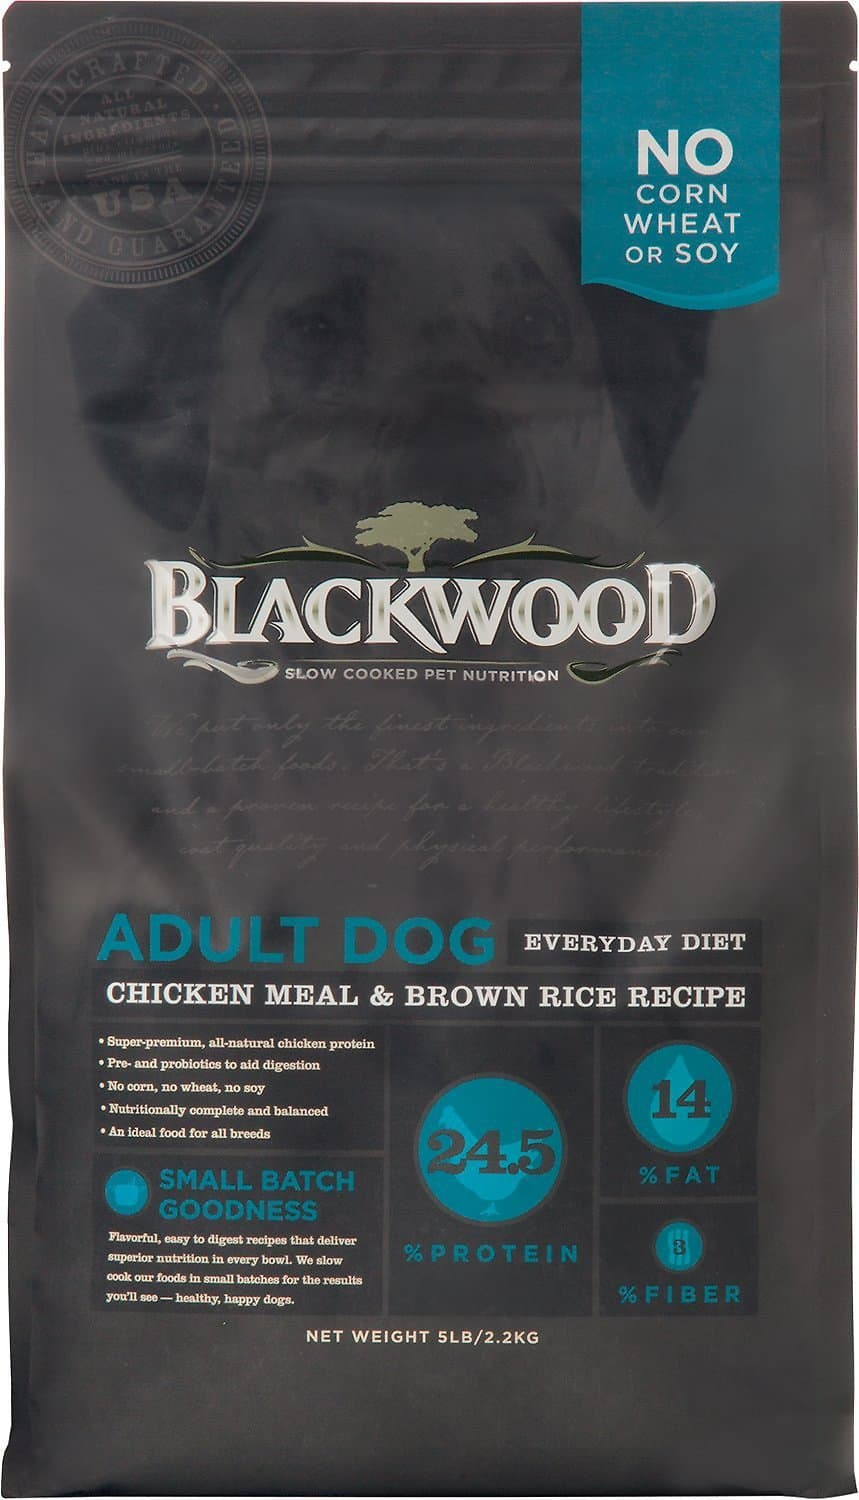 Blackwood Dog Food Review 2021: Best Slow Cooked Pet Nutrition? 14